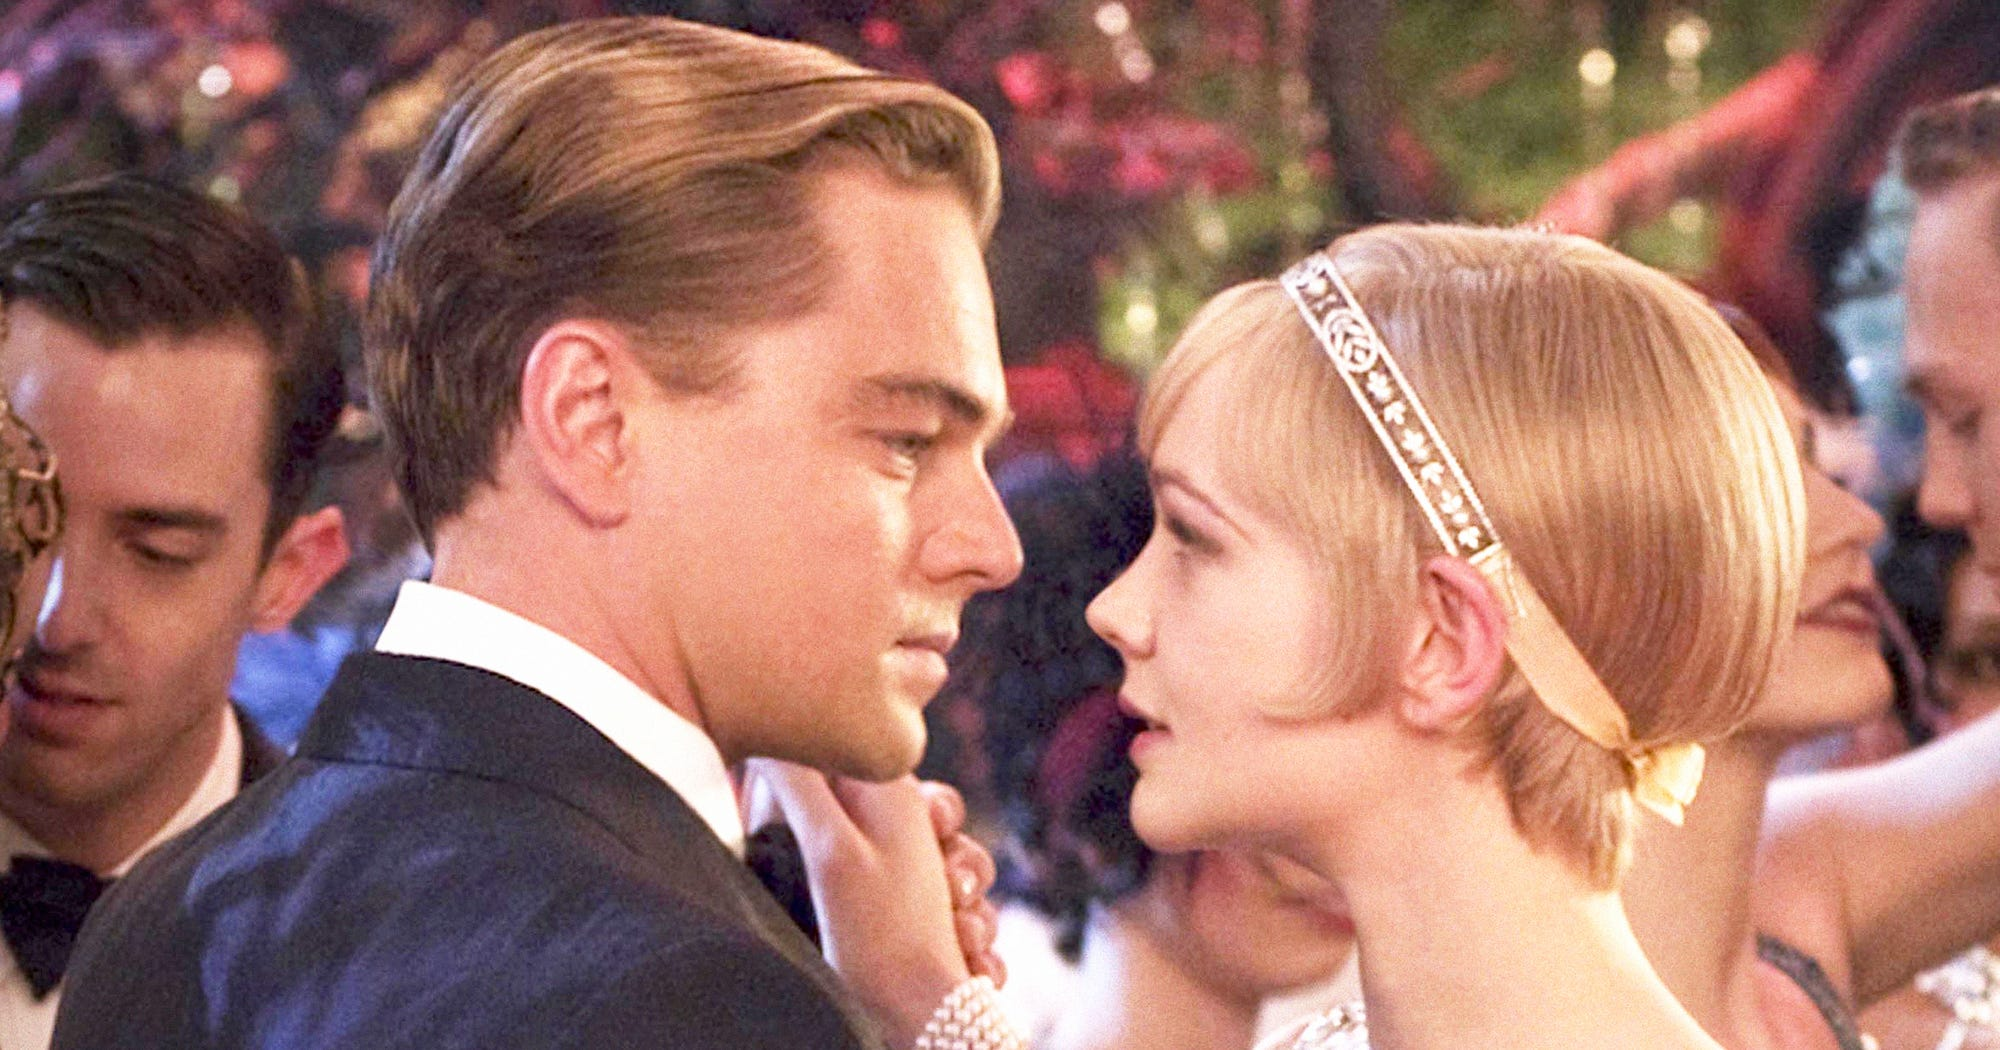 the great gatsby a criticism of Marxist interpretations the economics of class a marxist approach to the great gatsby might be concerned with the representations of social class, and the ways in.